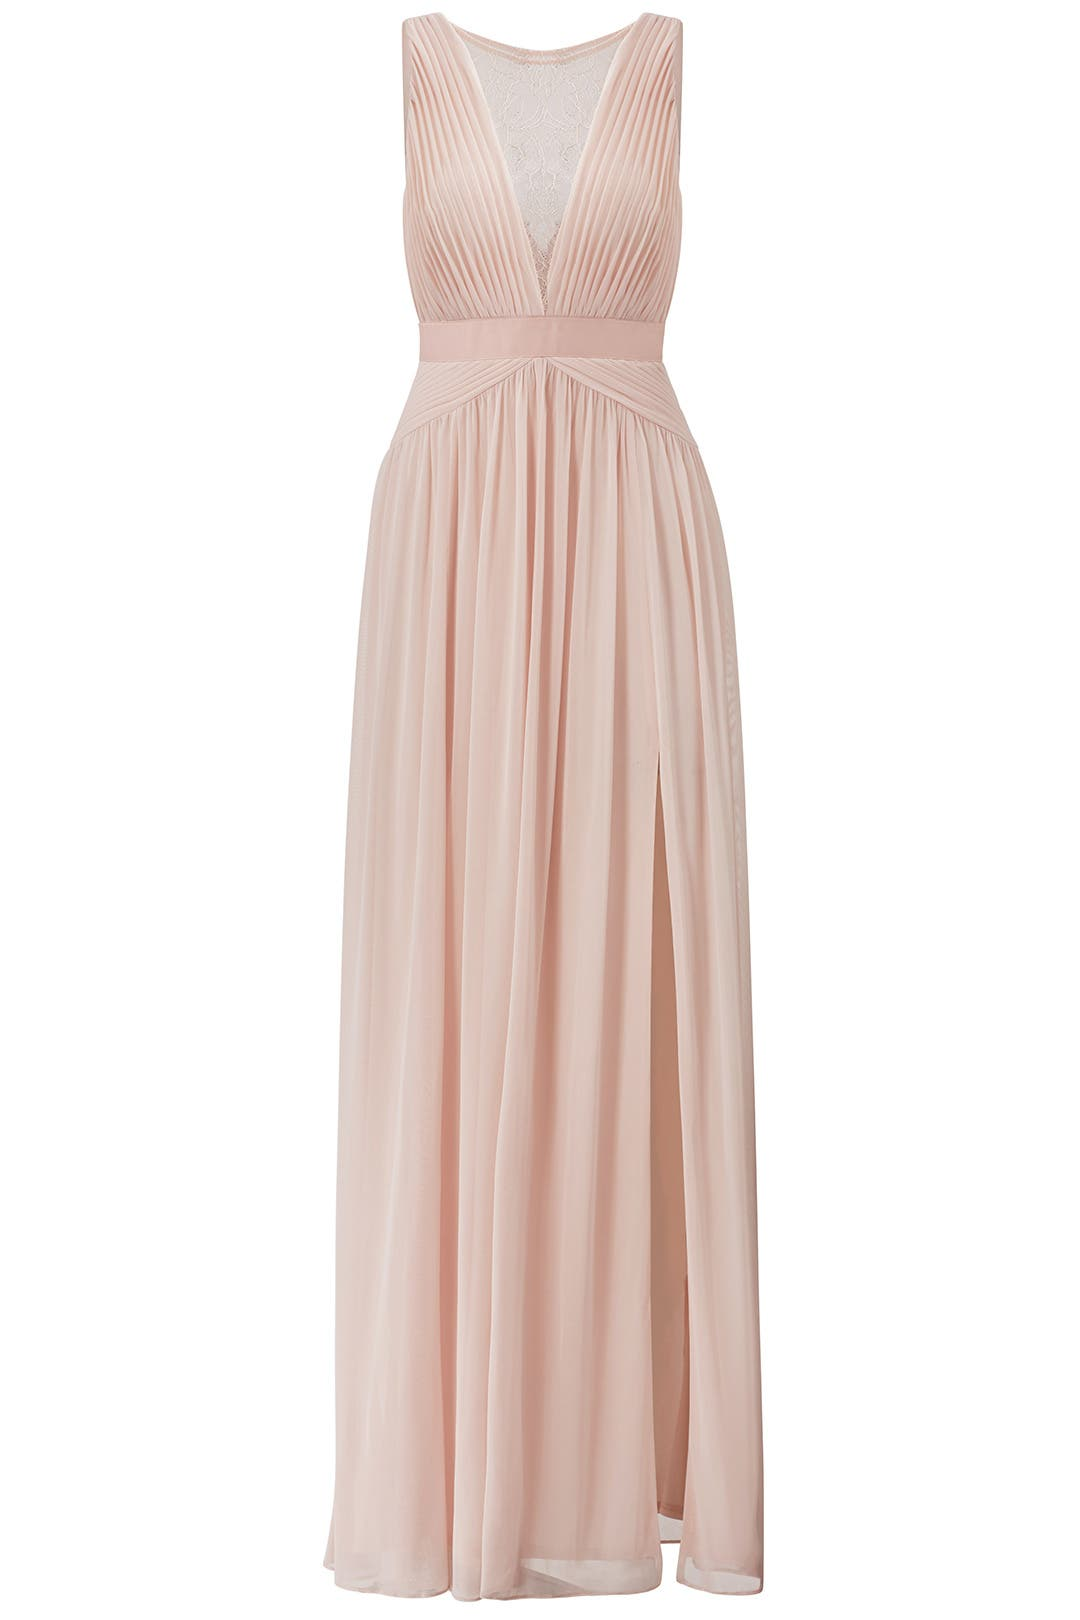 Blush Illusion Gown by Adrianna Papell for $35 - $55 | Rent the Runway